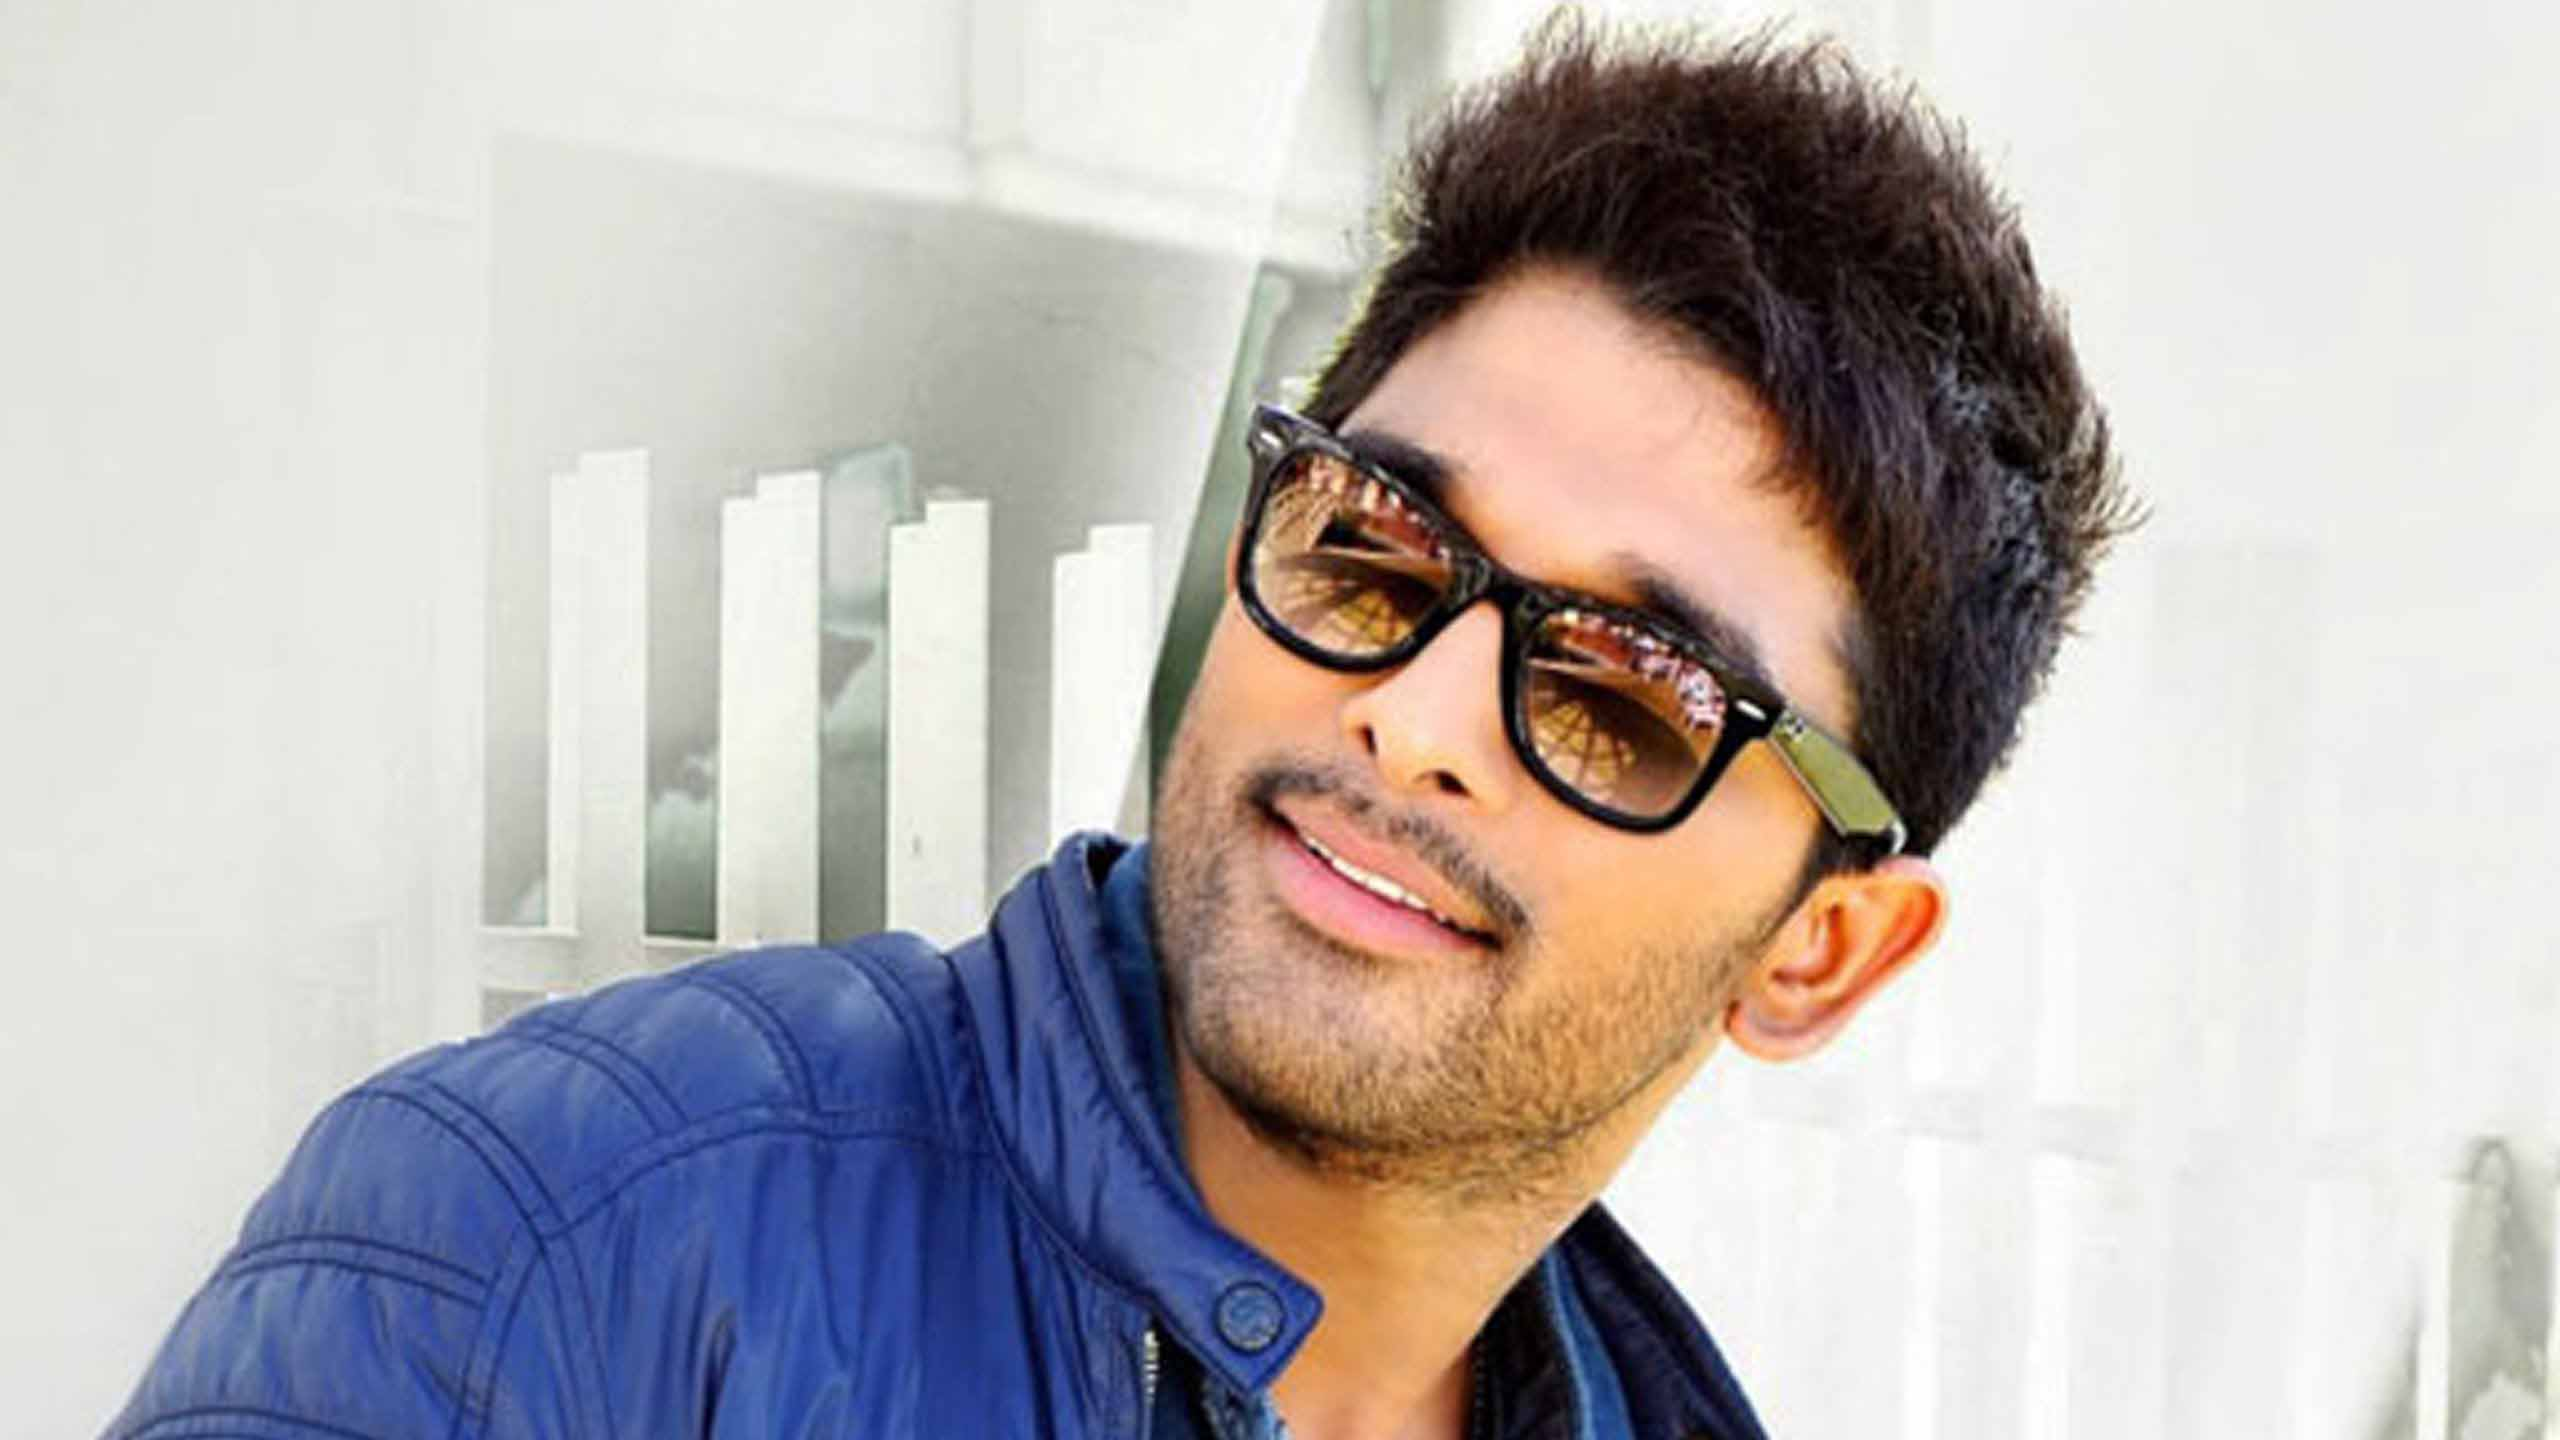 Allu Arjun Wallpapers Wallpaper Cave